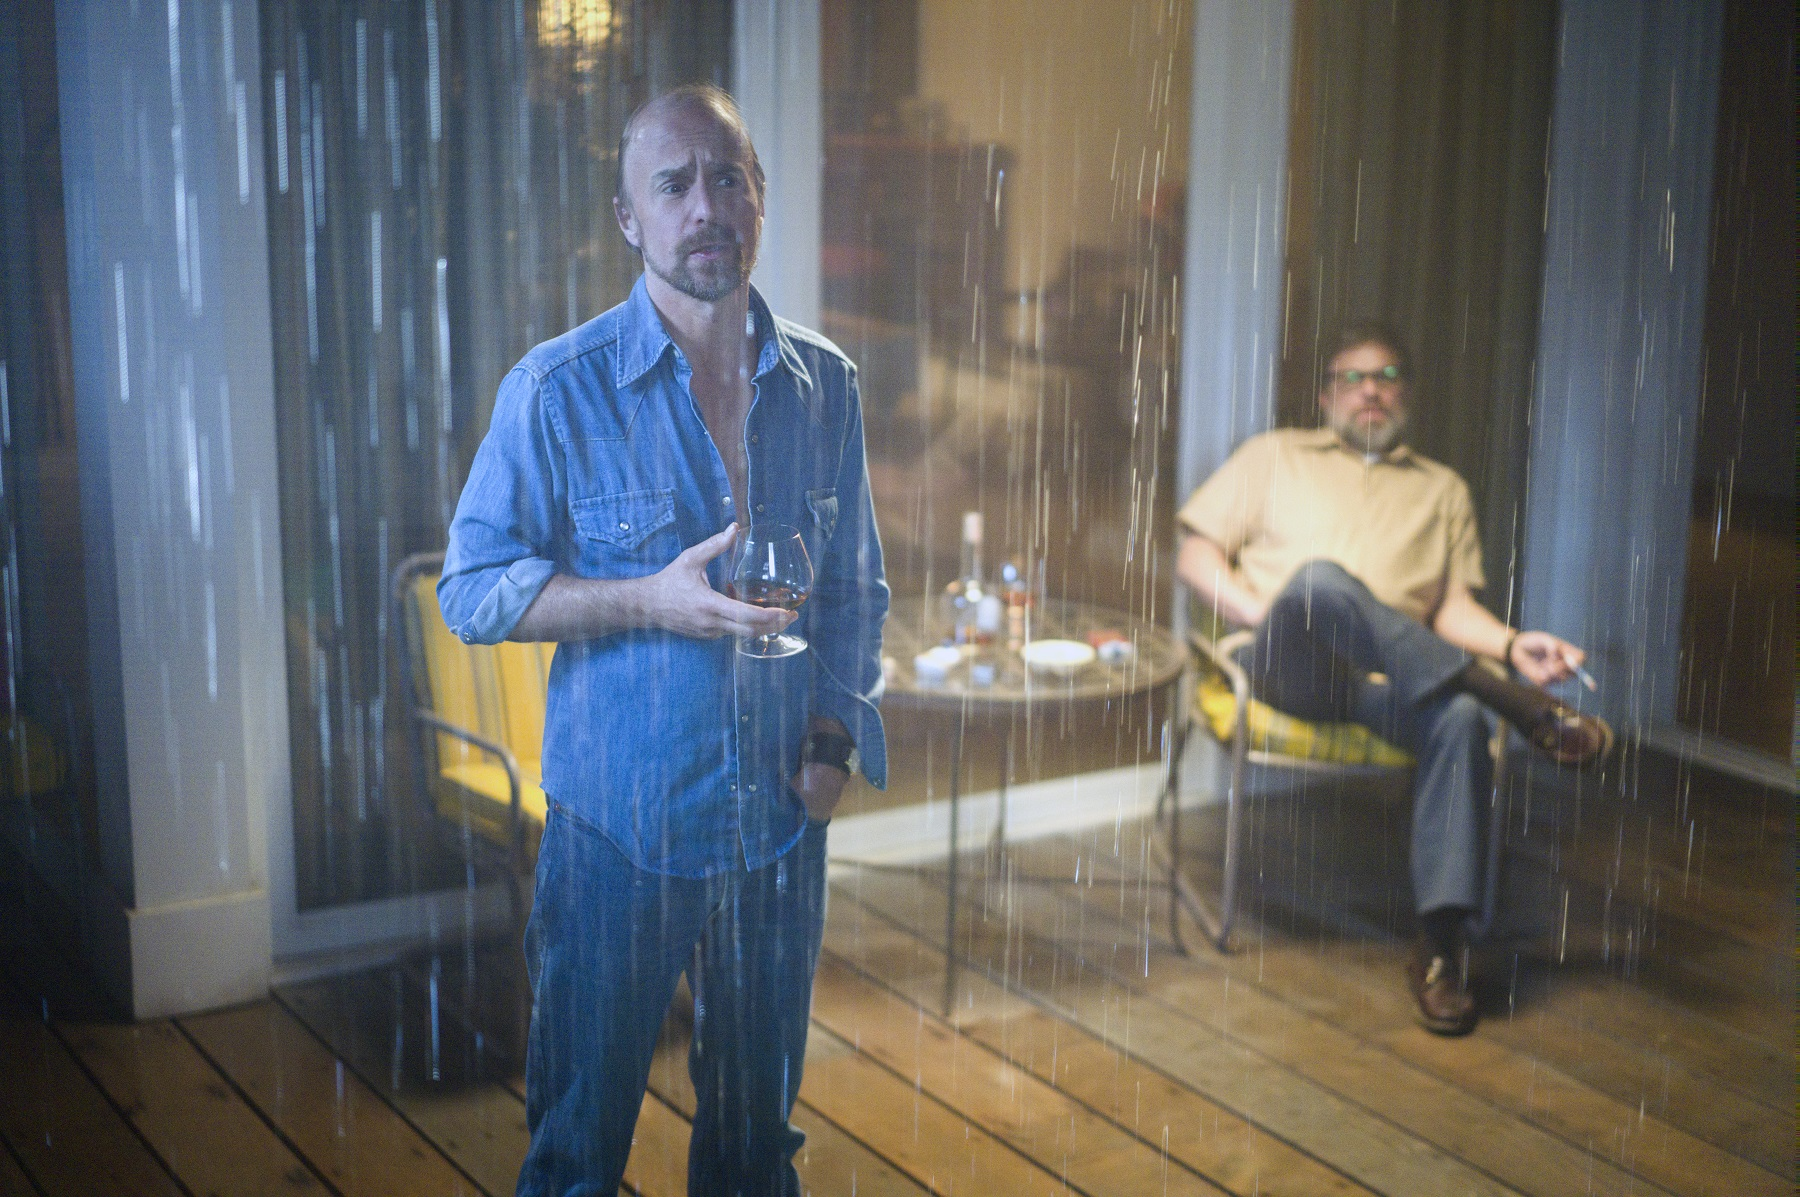 """A scene from the FX show """"Fosse/Verdon"""" where two characters are outside drinking brandy on the deck of a beach house in the rain."""